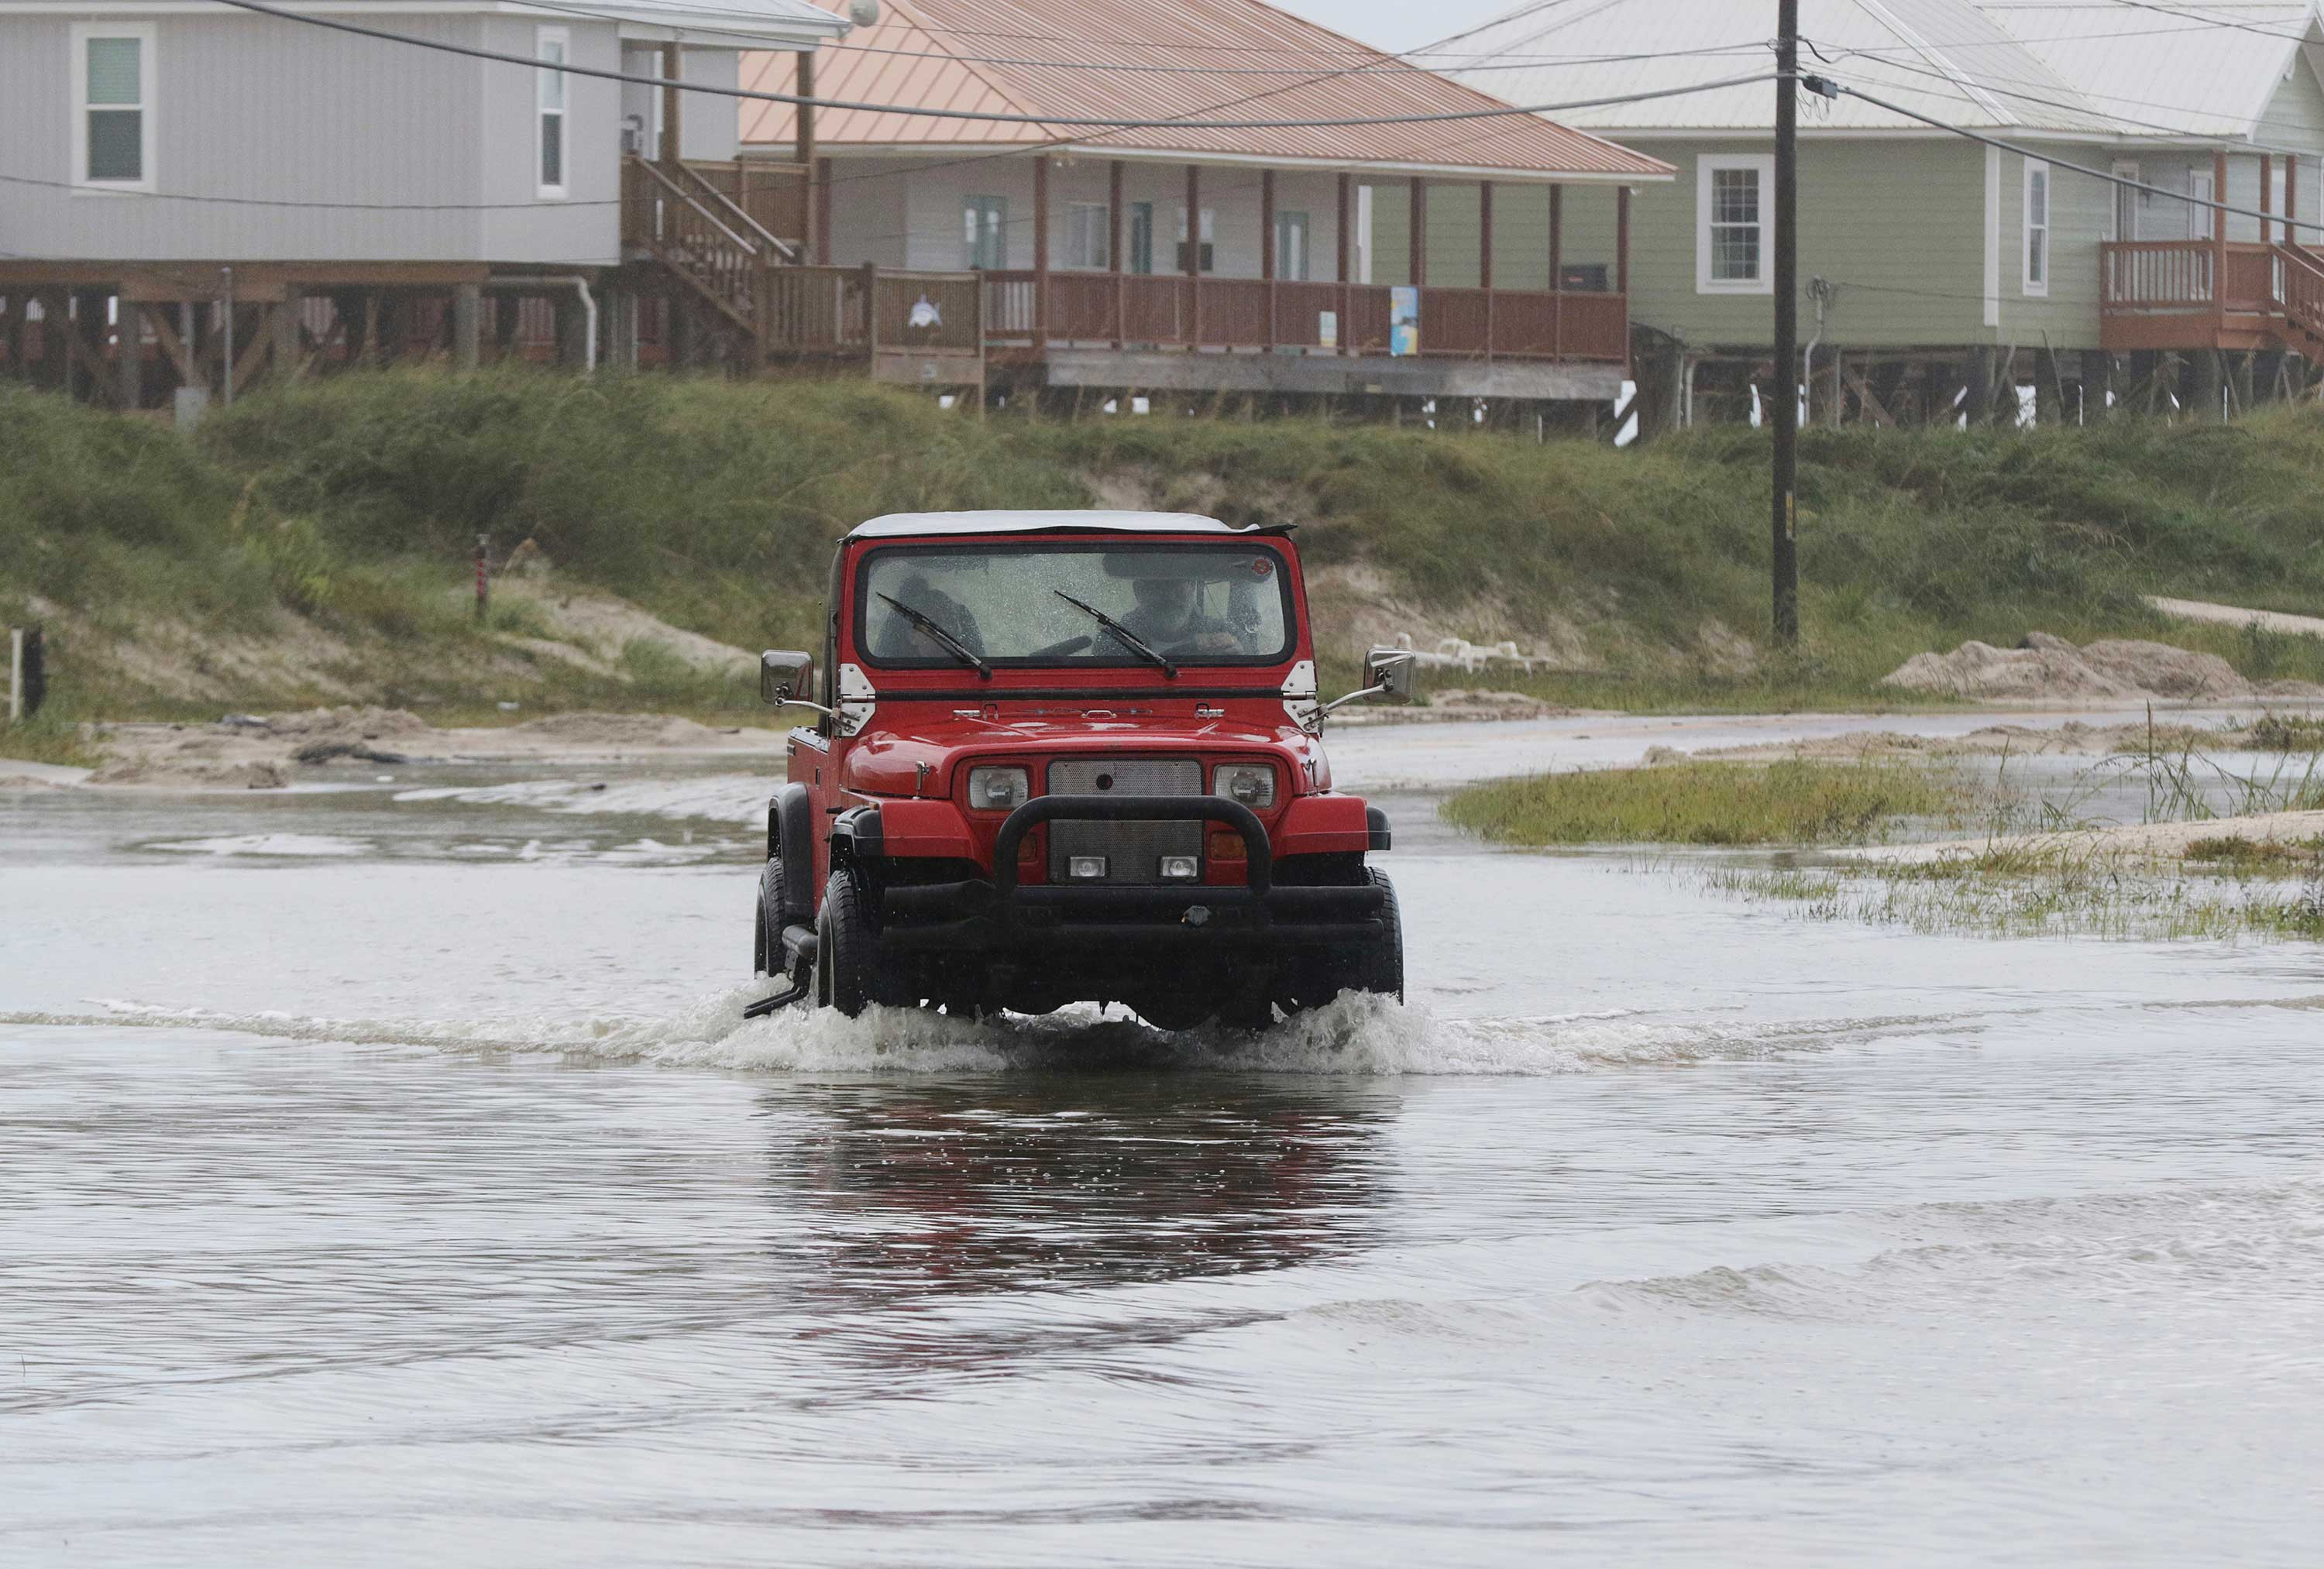 <div class='meta'><div class='origin-logo' data-origin='none'></div><span class='caption-text' data-credit='Dan Anderson/AP Photo'>A vehicle drives through a flooded street from Tropical Storm Gordon on Wednesday, Sept. 5, 2018 in Dauphin Island, Ala.</span></div>